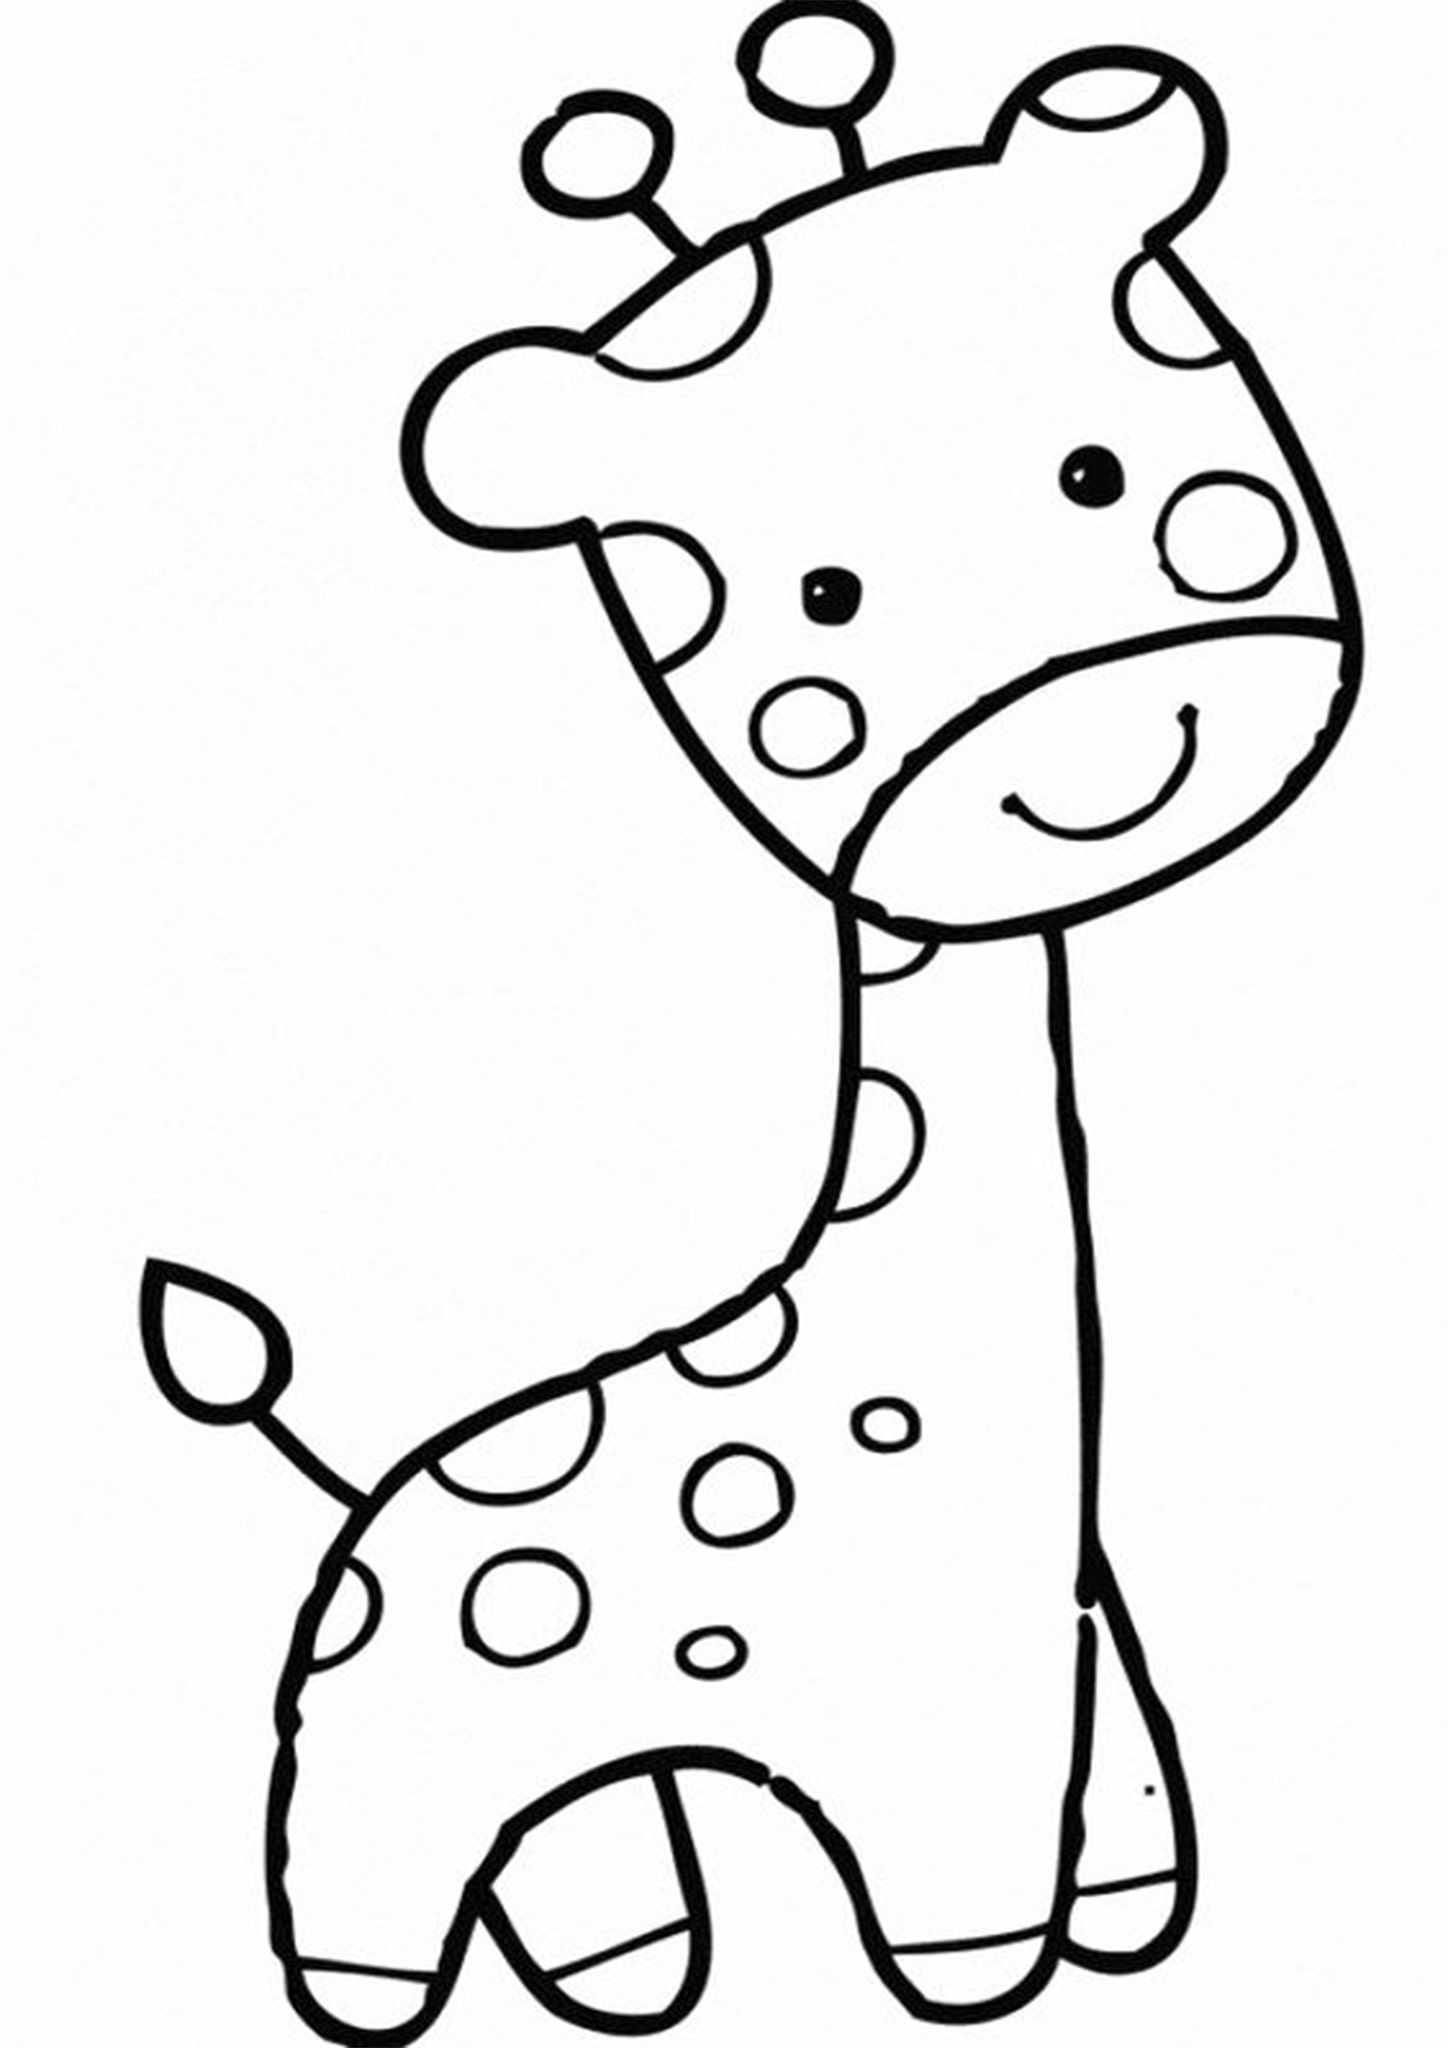 free baby animal coloring pages cute baby farm animal coloring pages best coloring pages baby coloring animal pages free